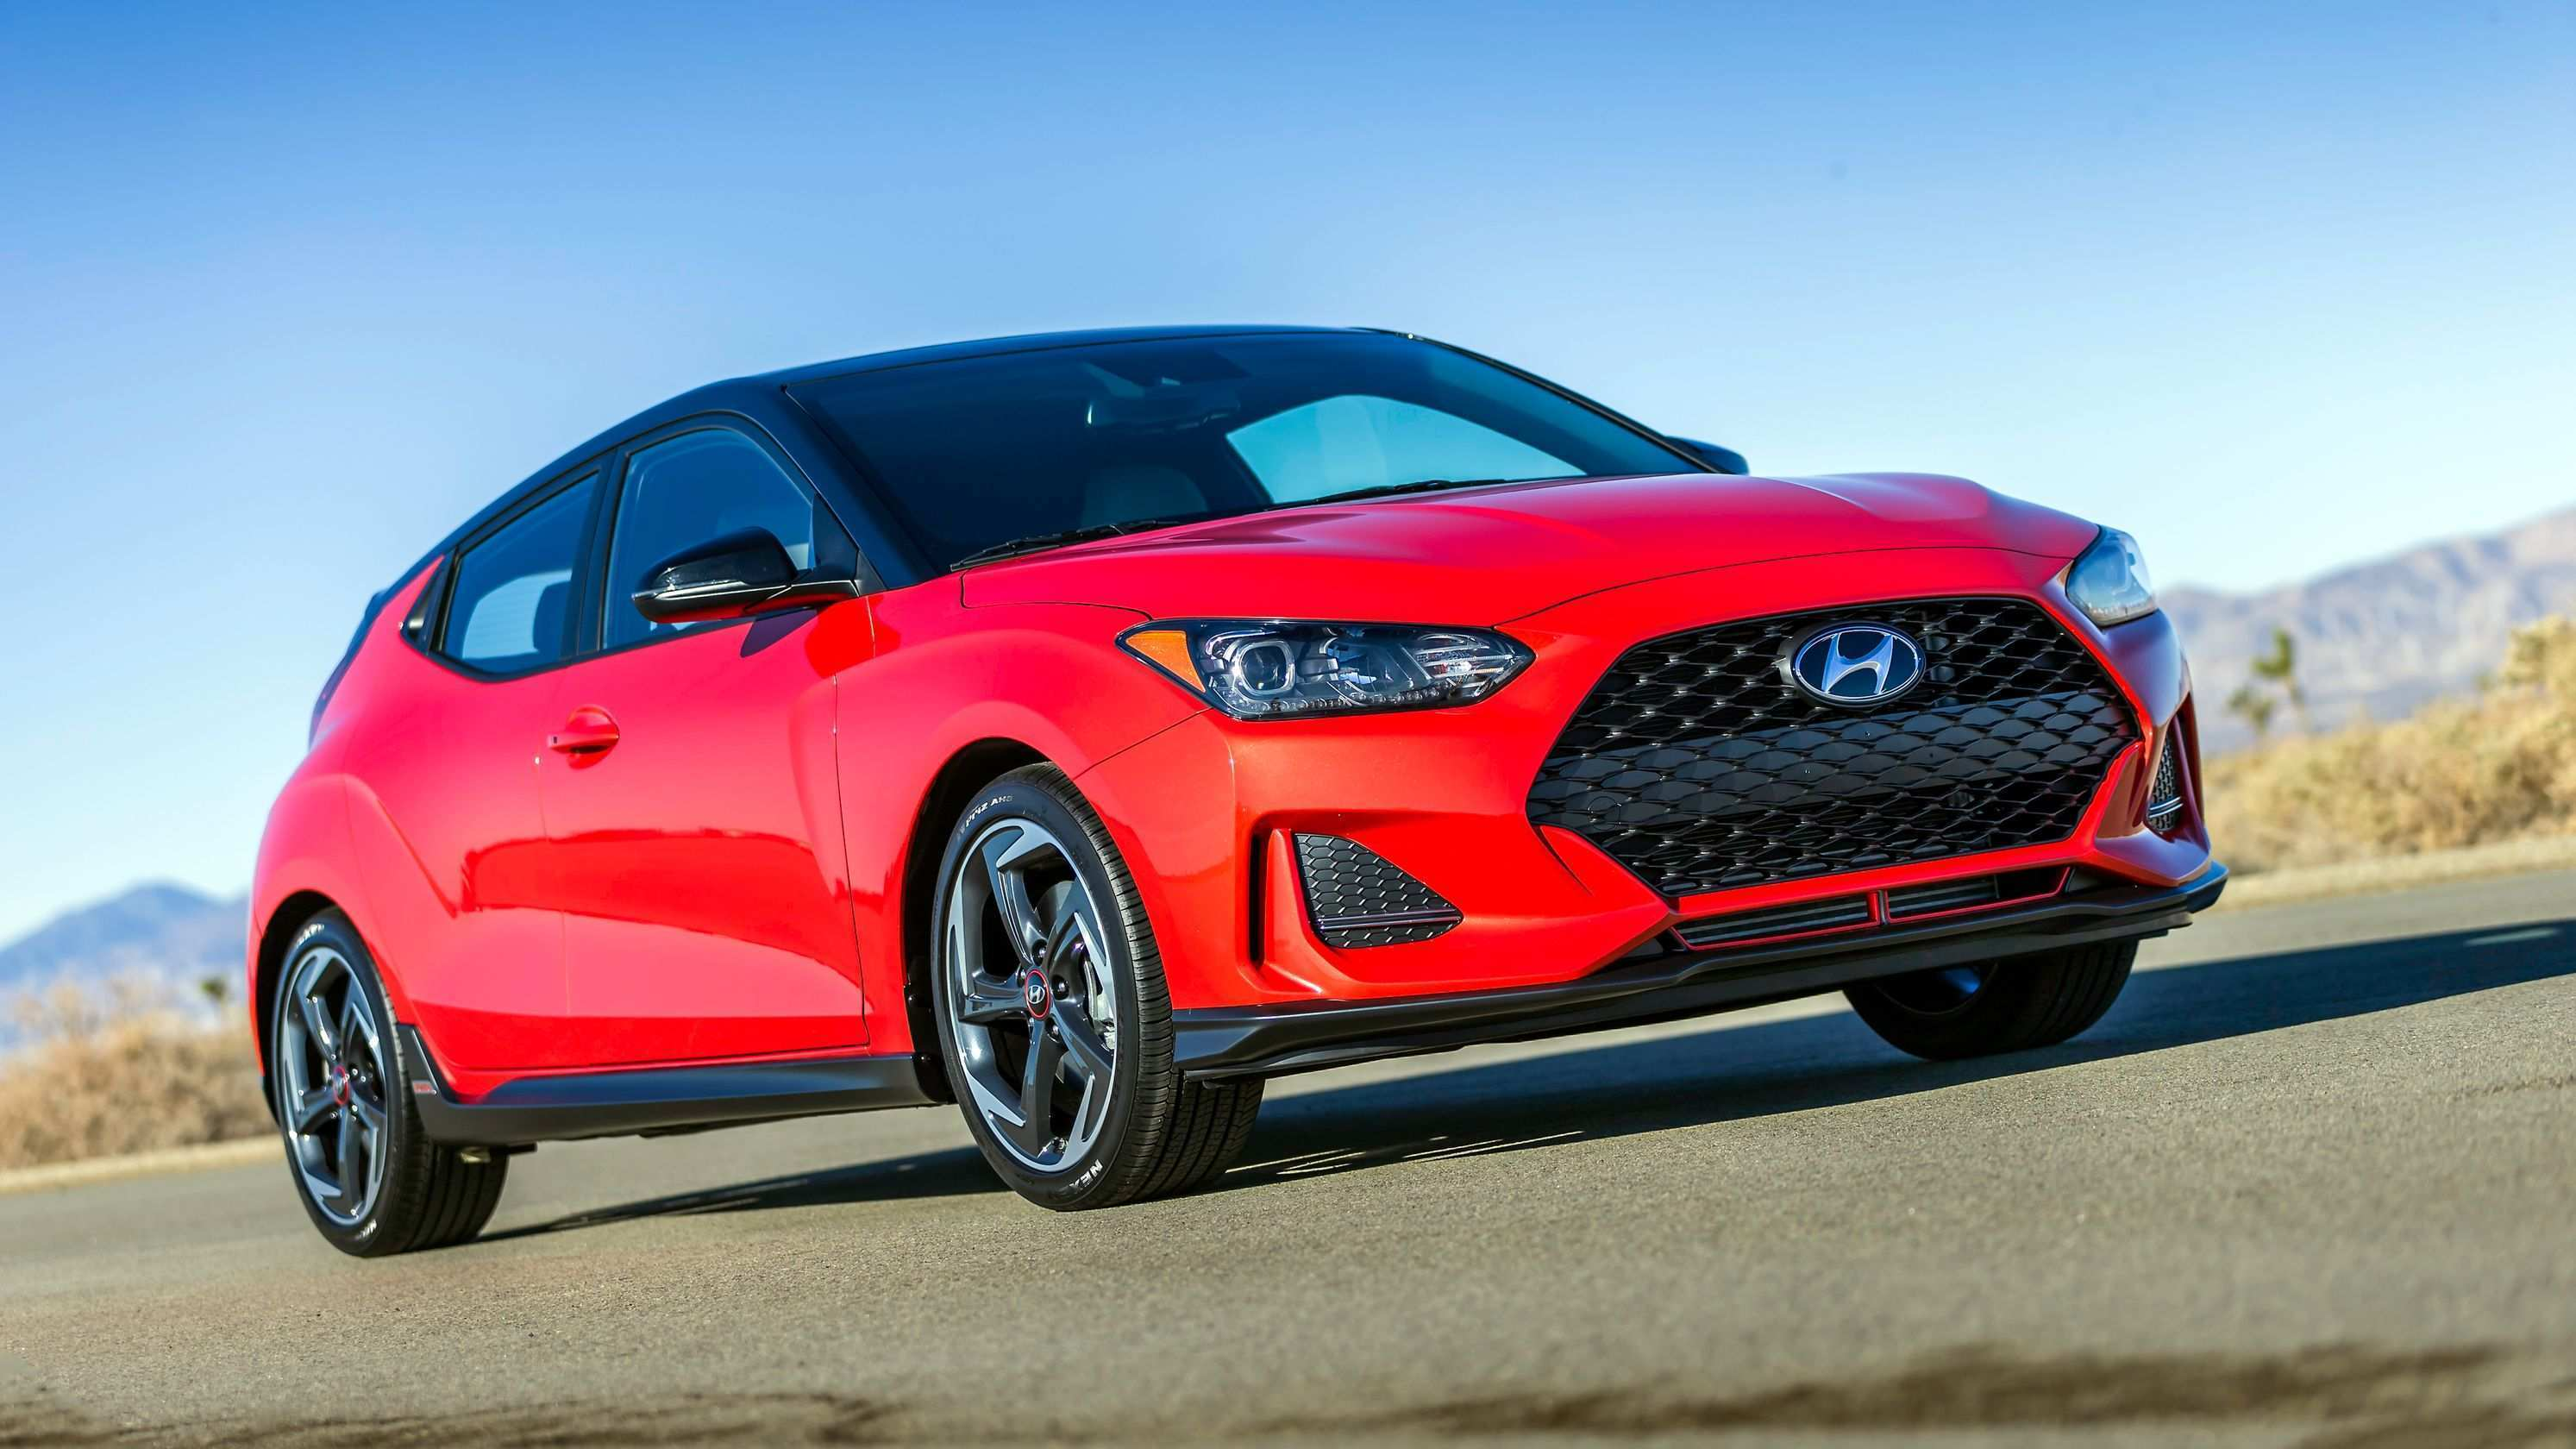 92 Great 2019 Hyundai Veloster Review Release with 2019 Hyundai Veloster Review